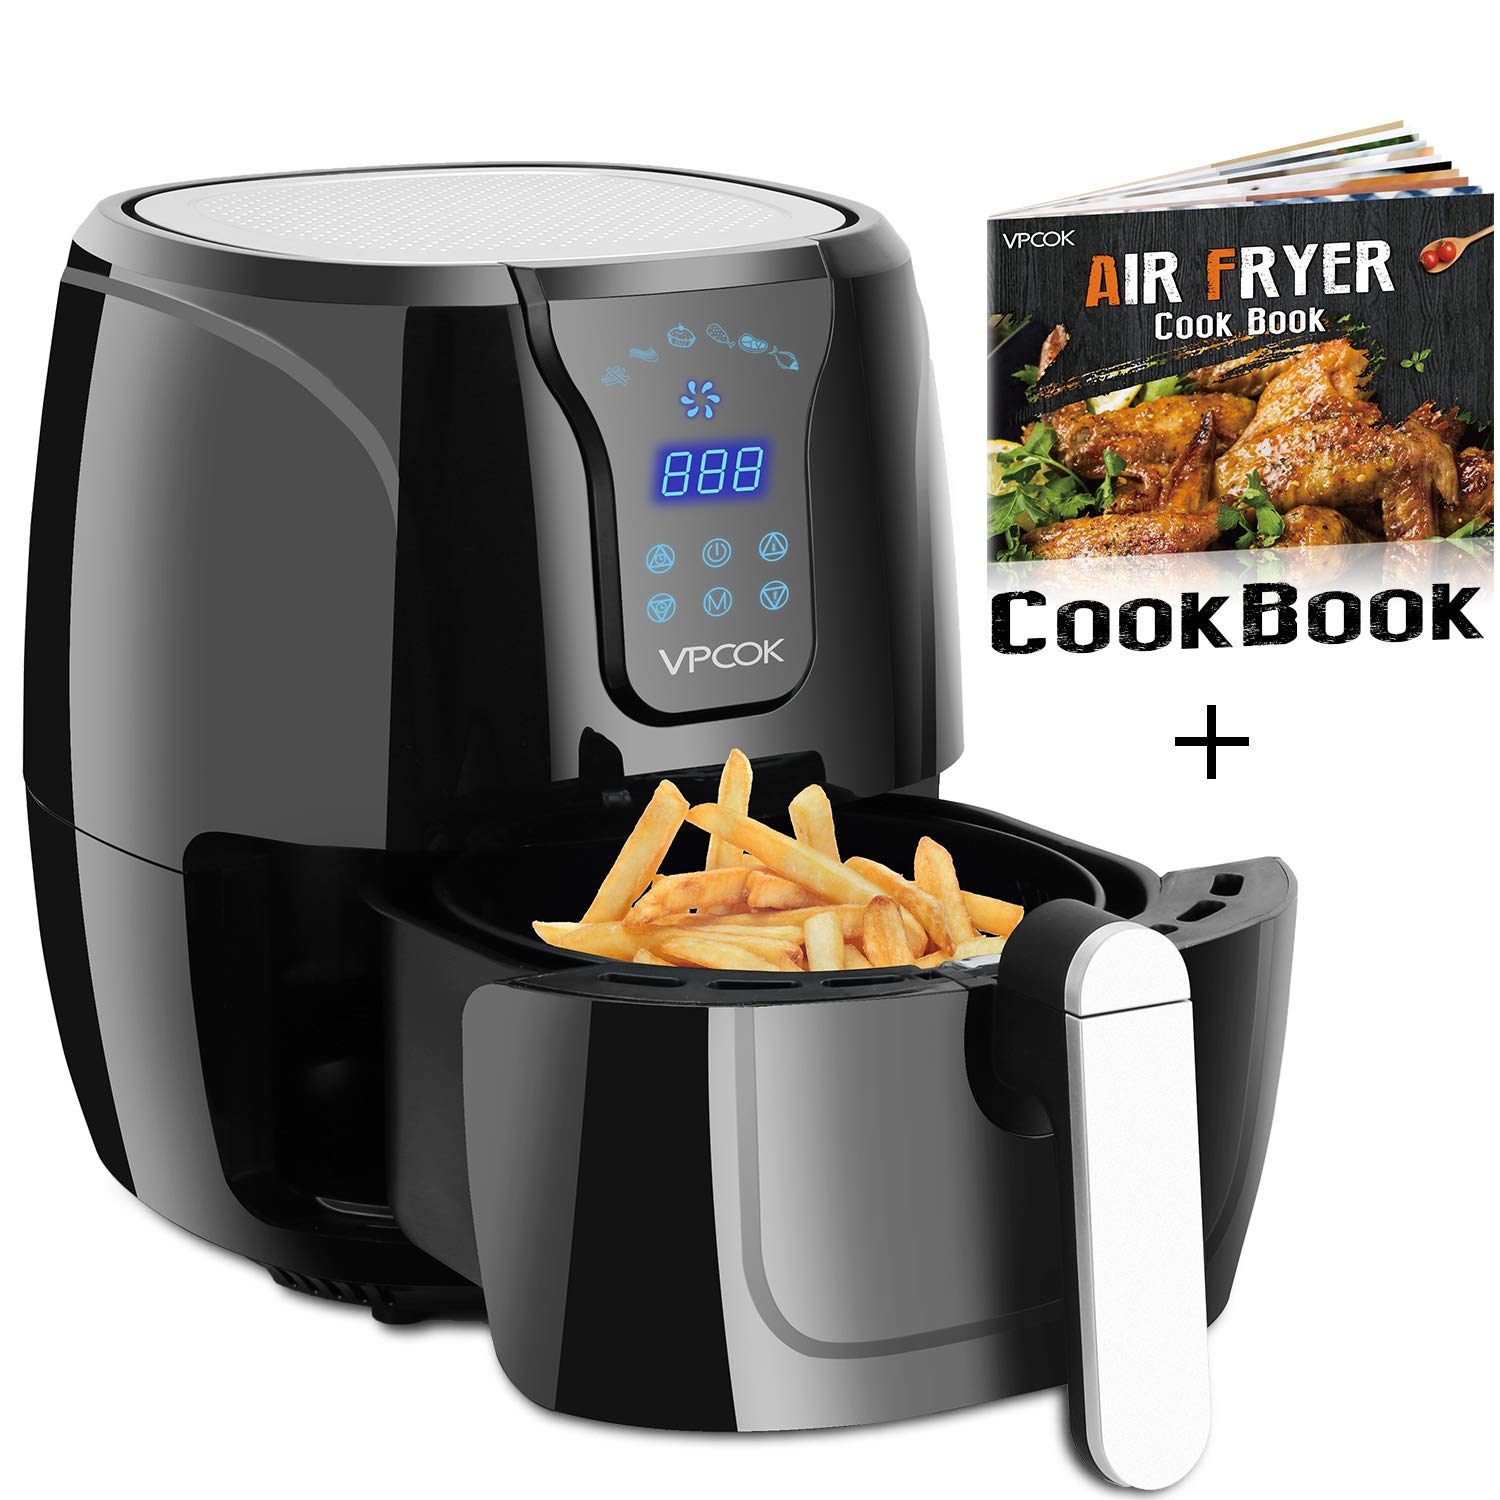 VPCOK 3.7-Quart XL Air Fryer with Recipes